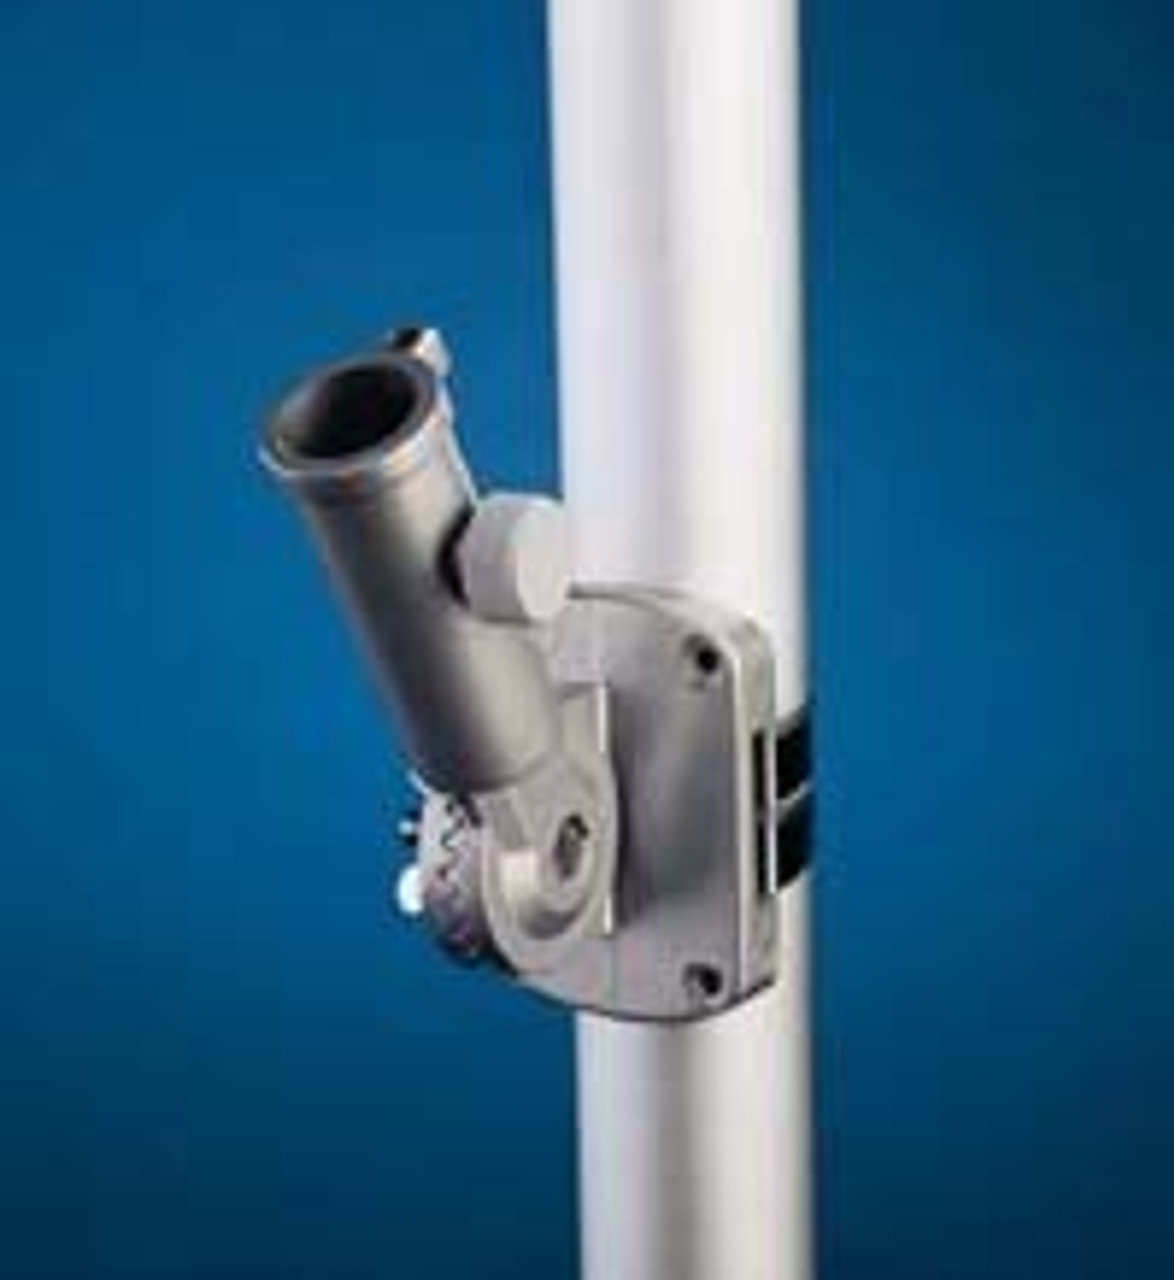 The adjustable mounting bracket sits attached to a pole securely.